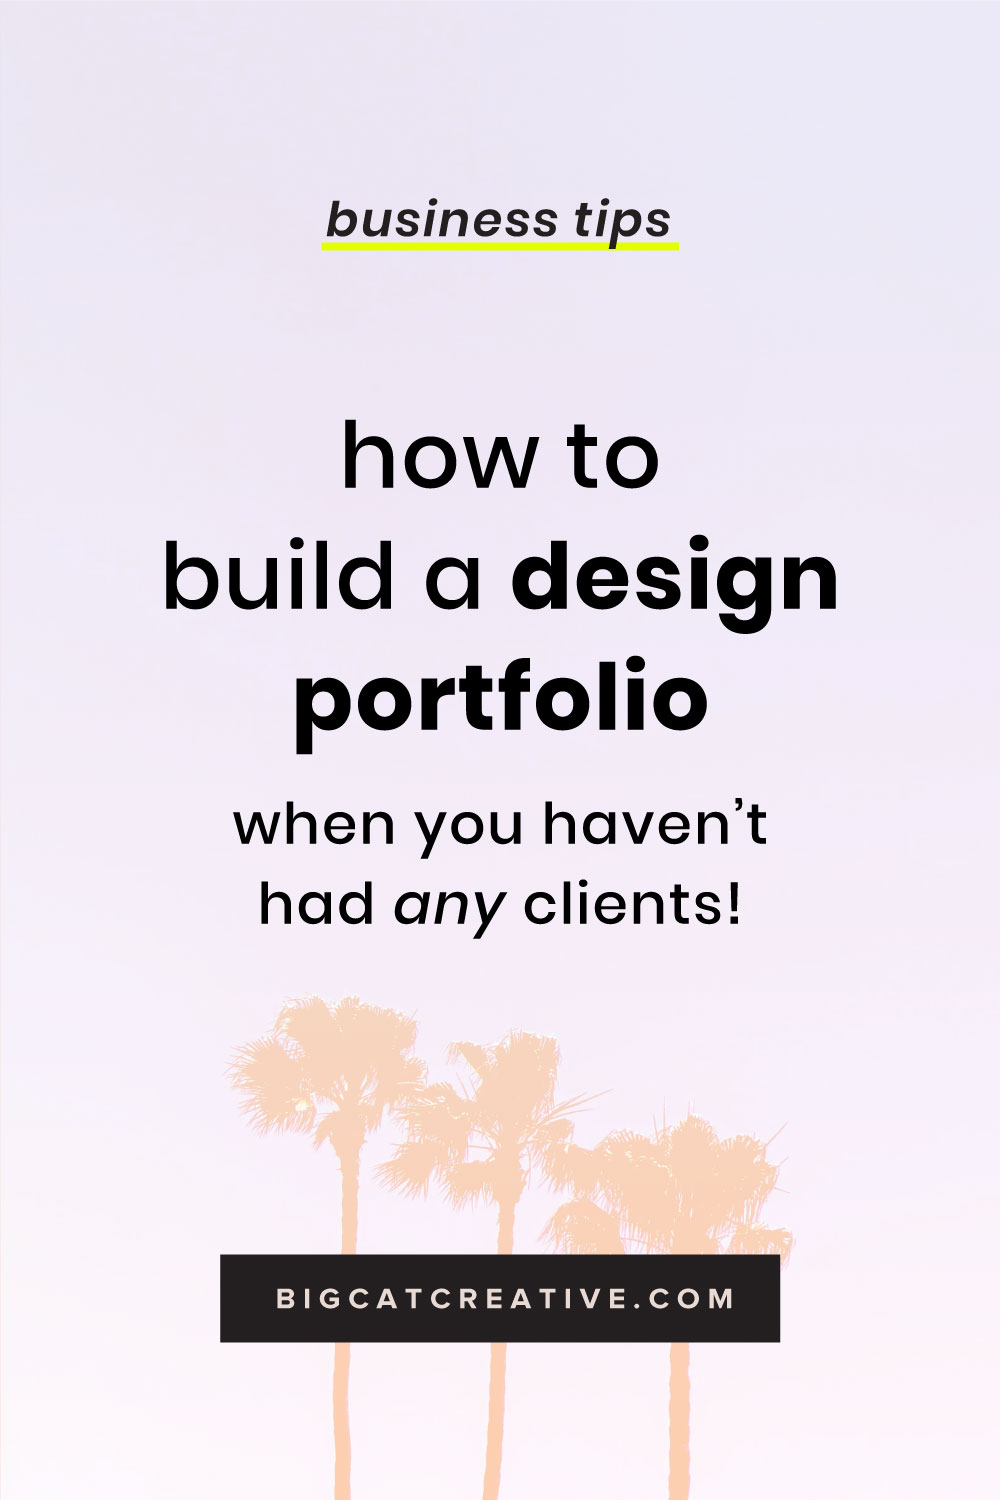 Having a Portfolio to showcase your work is one of the best ways to get new clients, but what do you do if you're just starting out and you don't have any client work to display? Check out this post for my tips on how to create a portfolio when you haven't had any clients yet | Graphic Design Business Tips by Big Cat Creative | Design, Designer, Freelancer, Graphic Design, Design Business, Online Design Business, Getting Design Clients, Design Tips